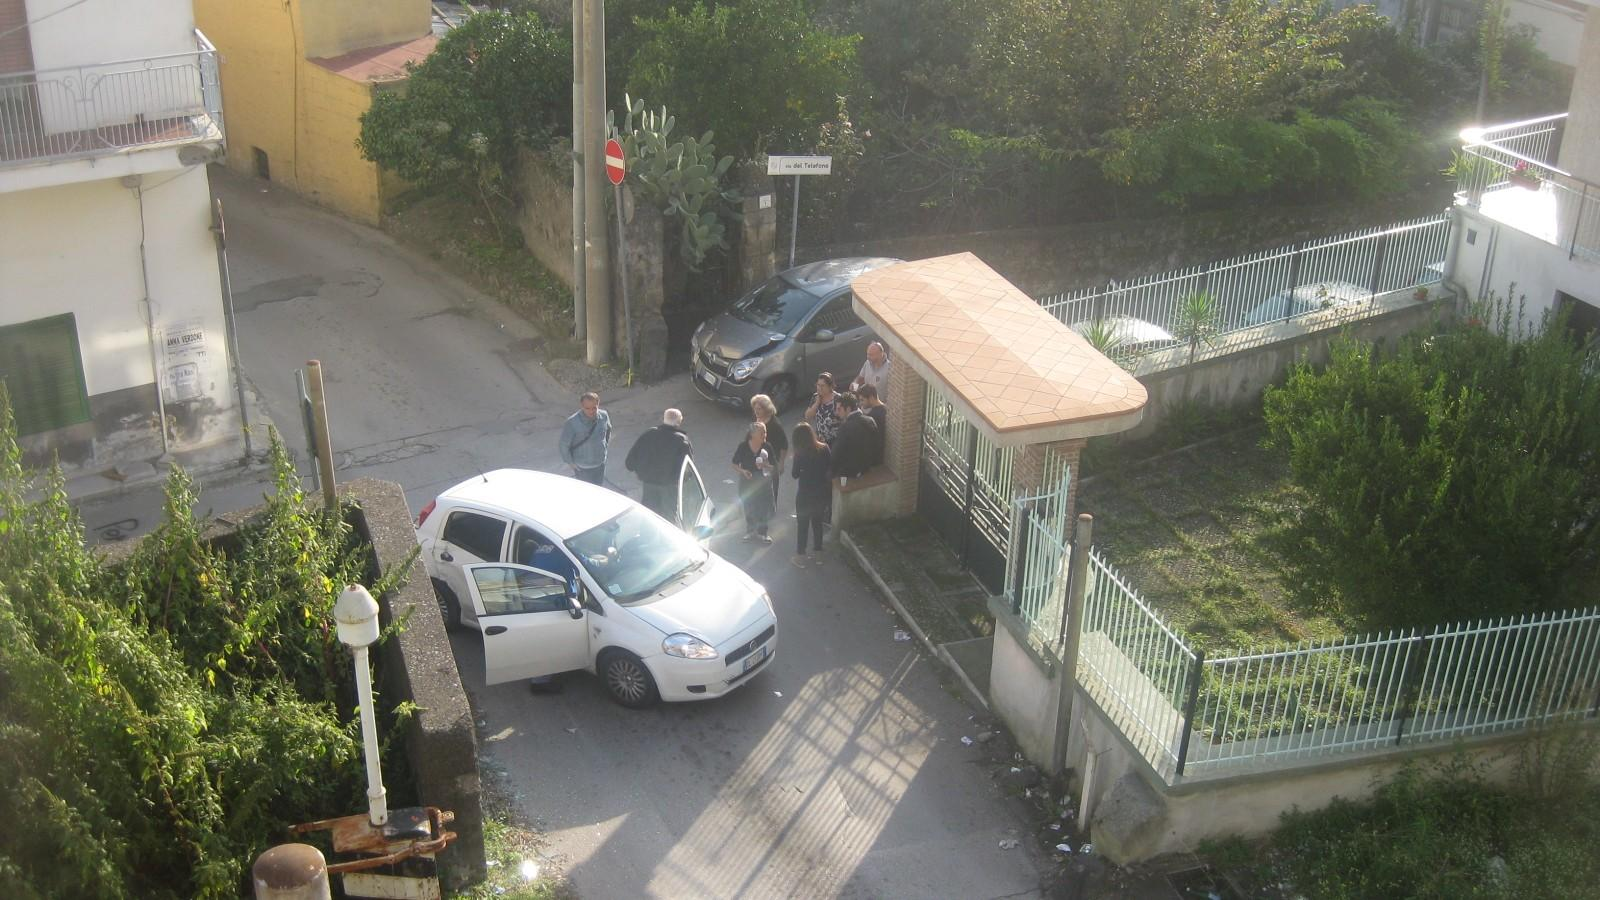 INCIDENTE VIA DEL TELEFONO. 001